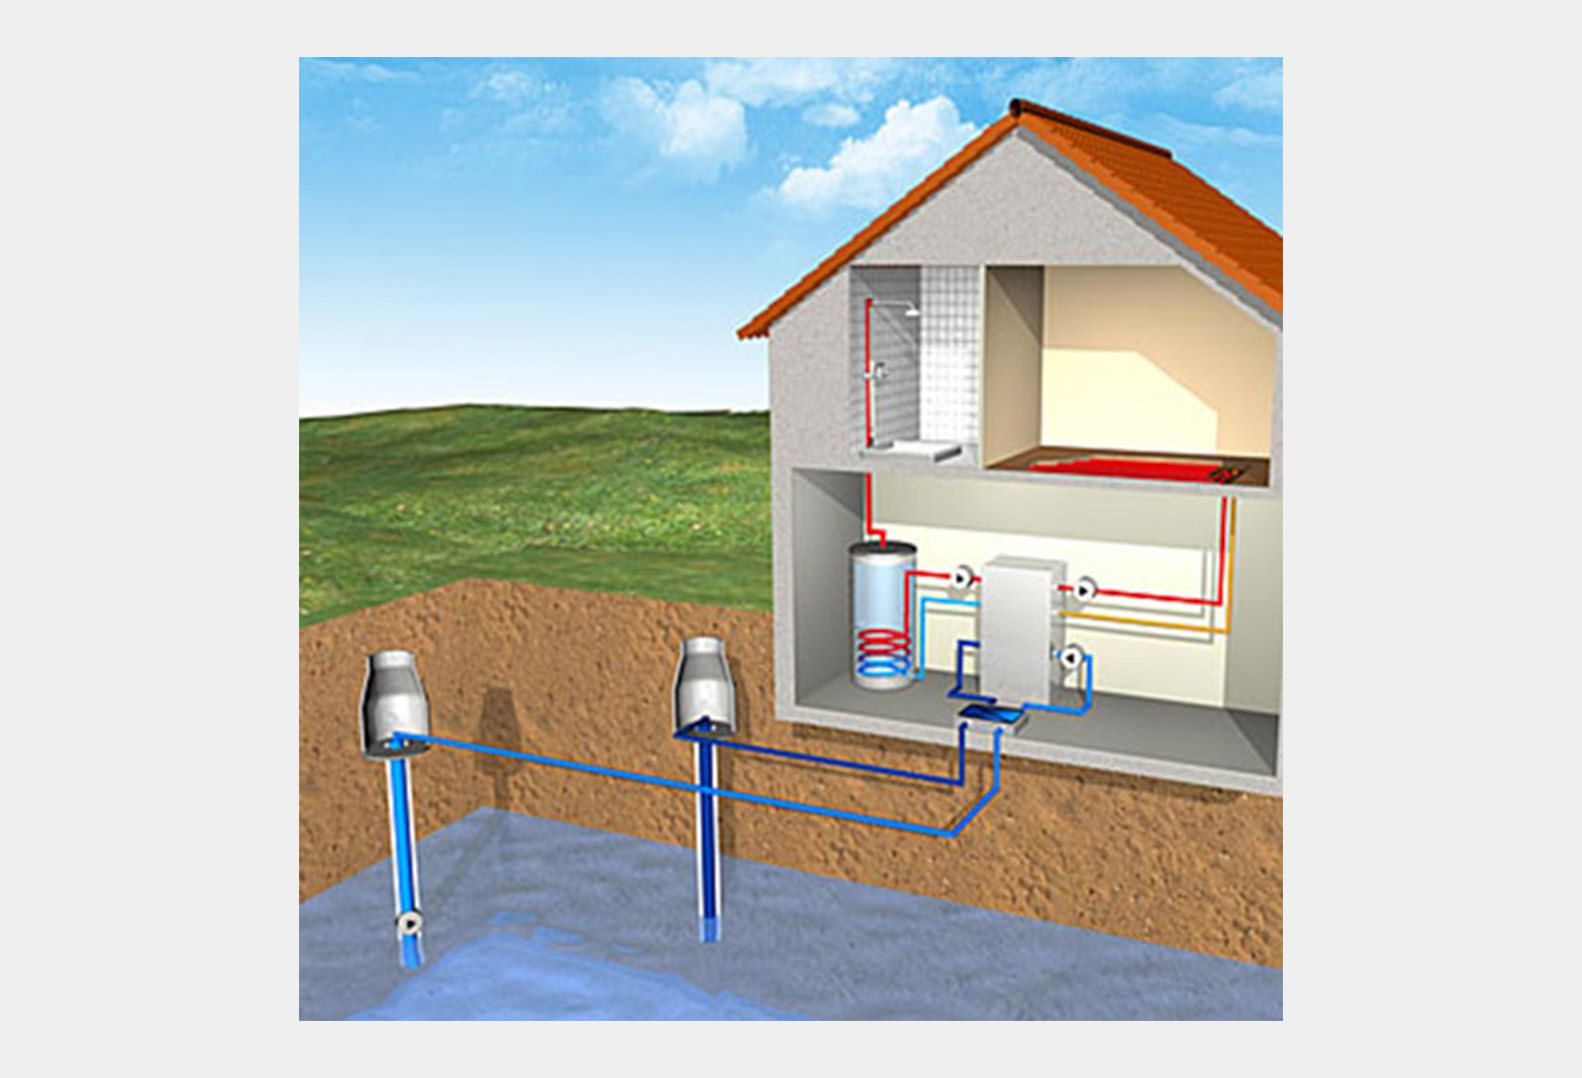 Schematic Representation of an open loop geothermal system